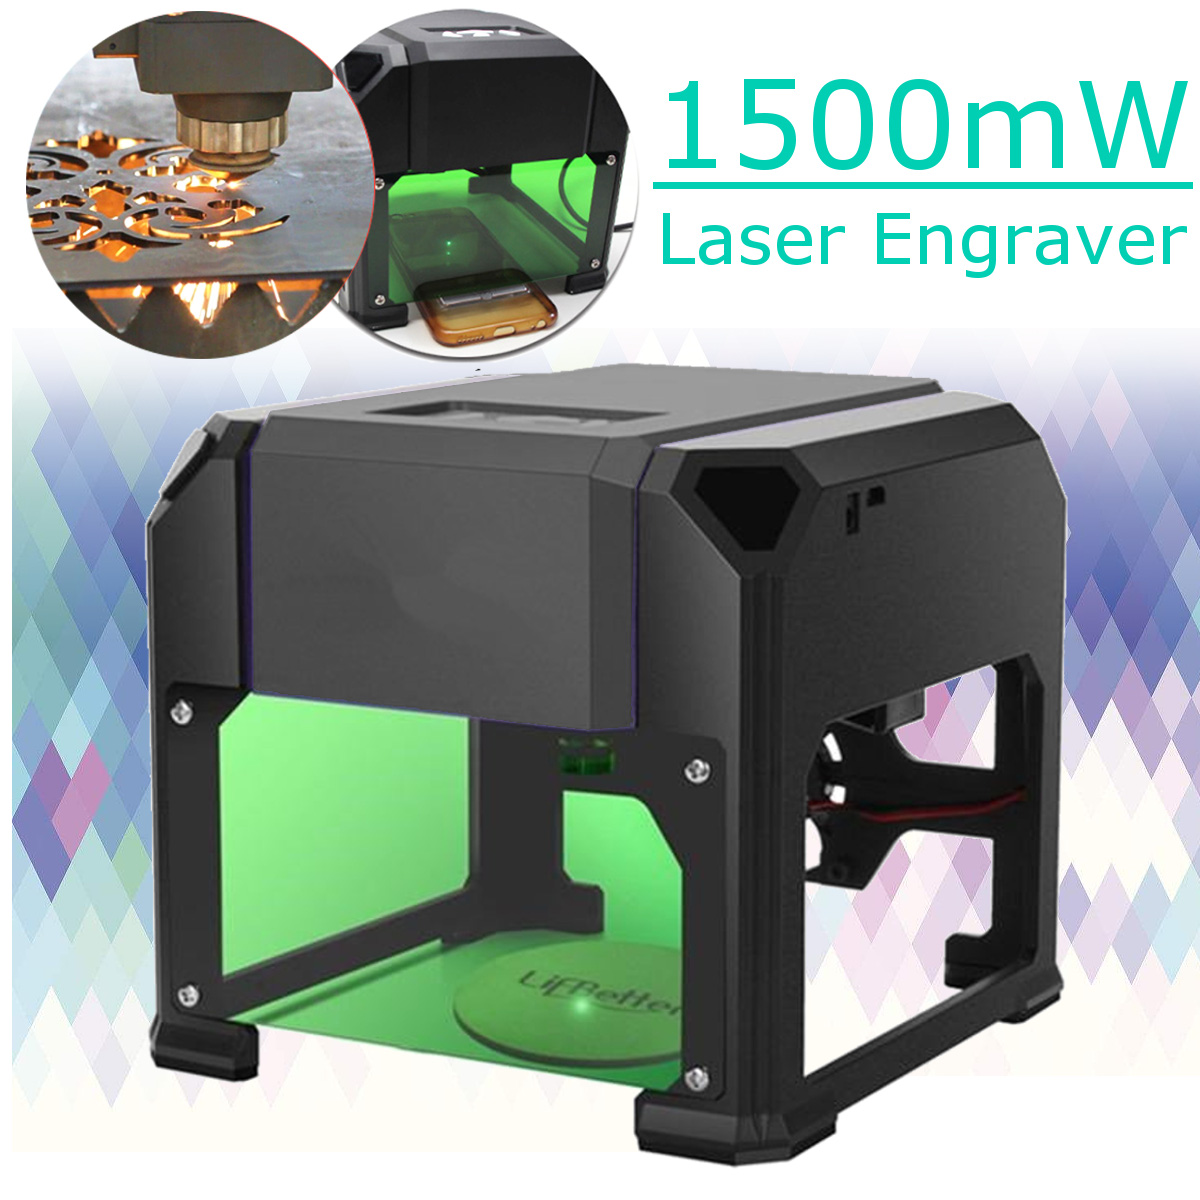 1500mw USB Desktop Laser Engraving Machine DIY Logo Marking Engraver CNC Laser Carving Machine 80x80mm Engraving Range 10pcs replacement hepa dust filter for neato botvac 70e 75 80 85 d5 series robotic vacuum cleaners robot parts